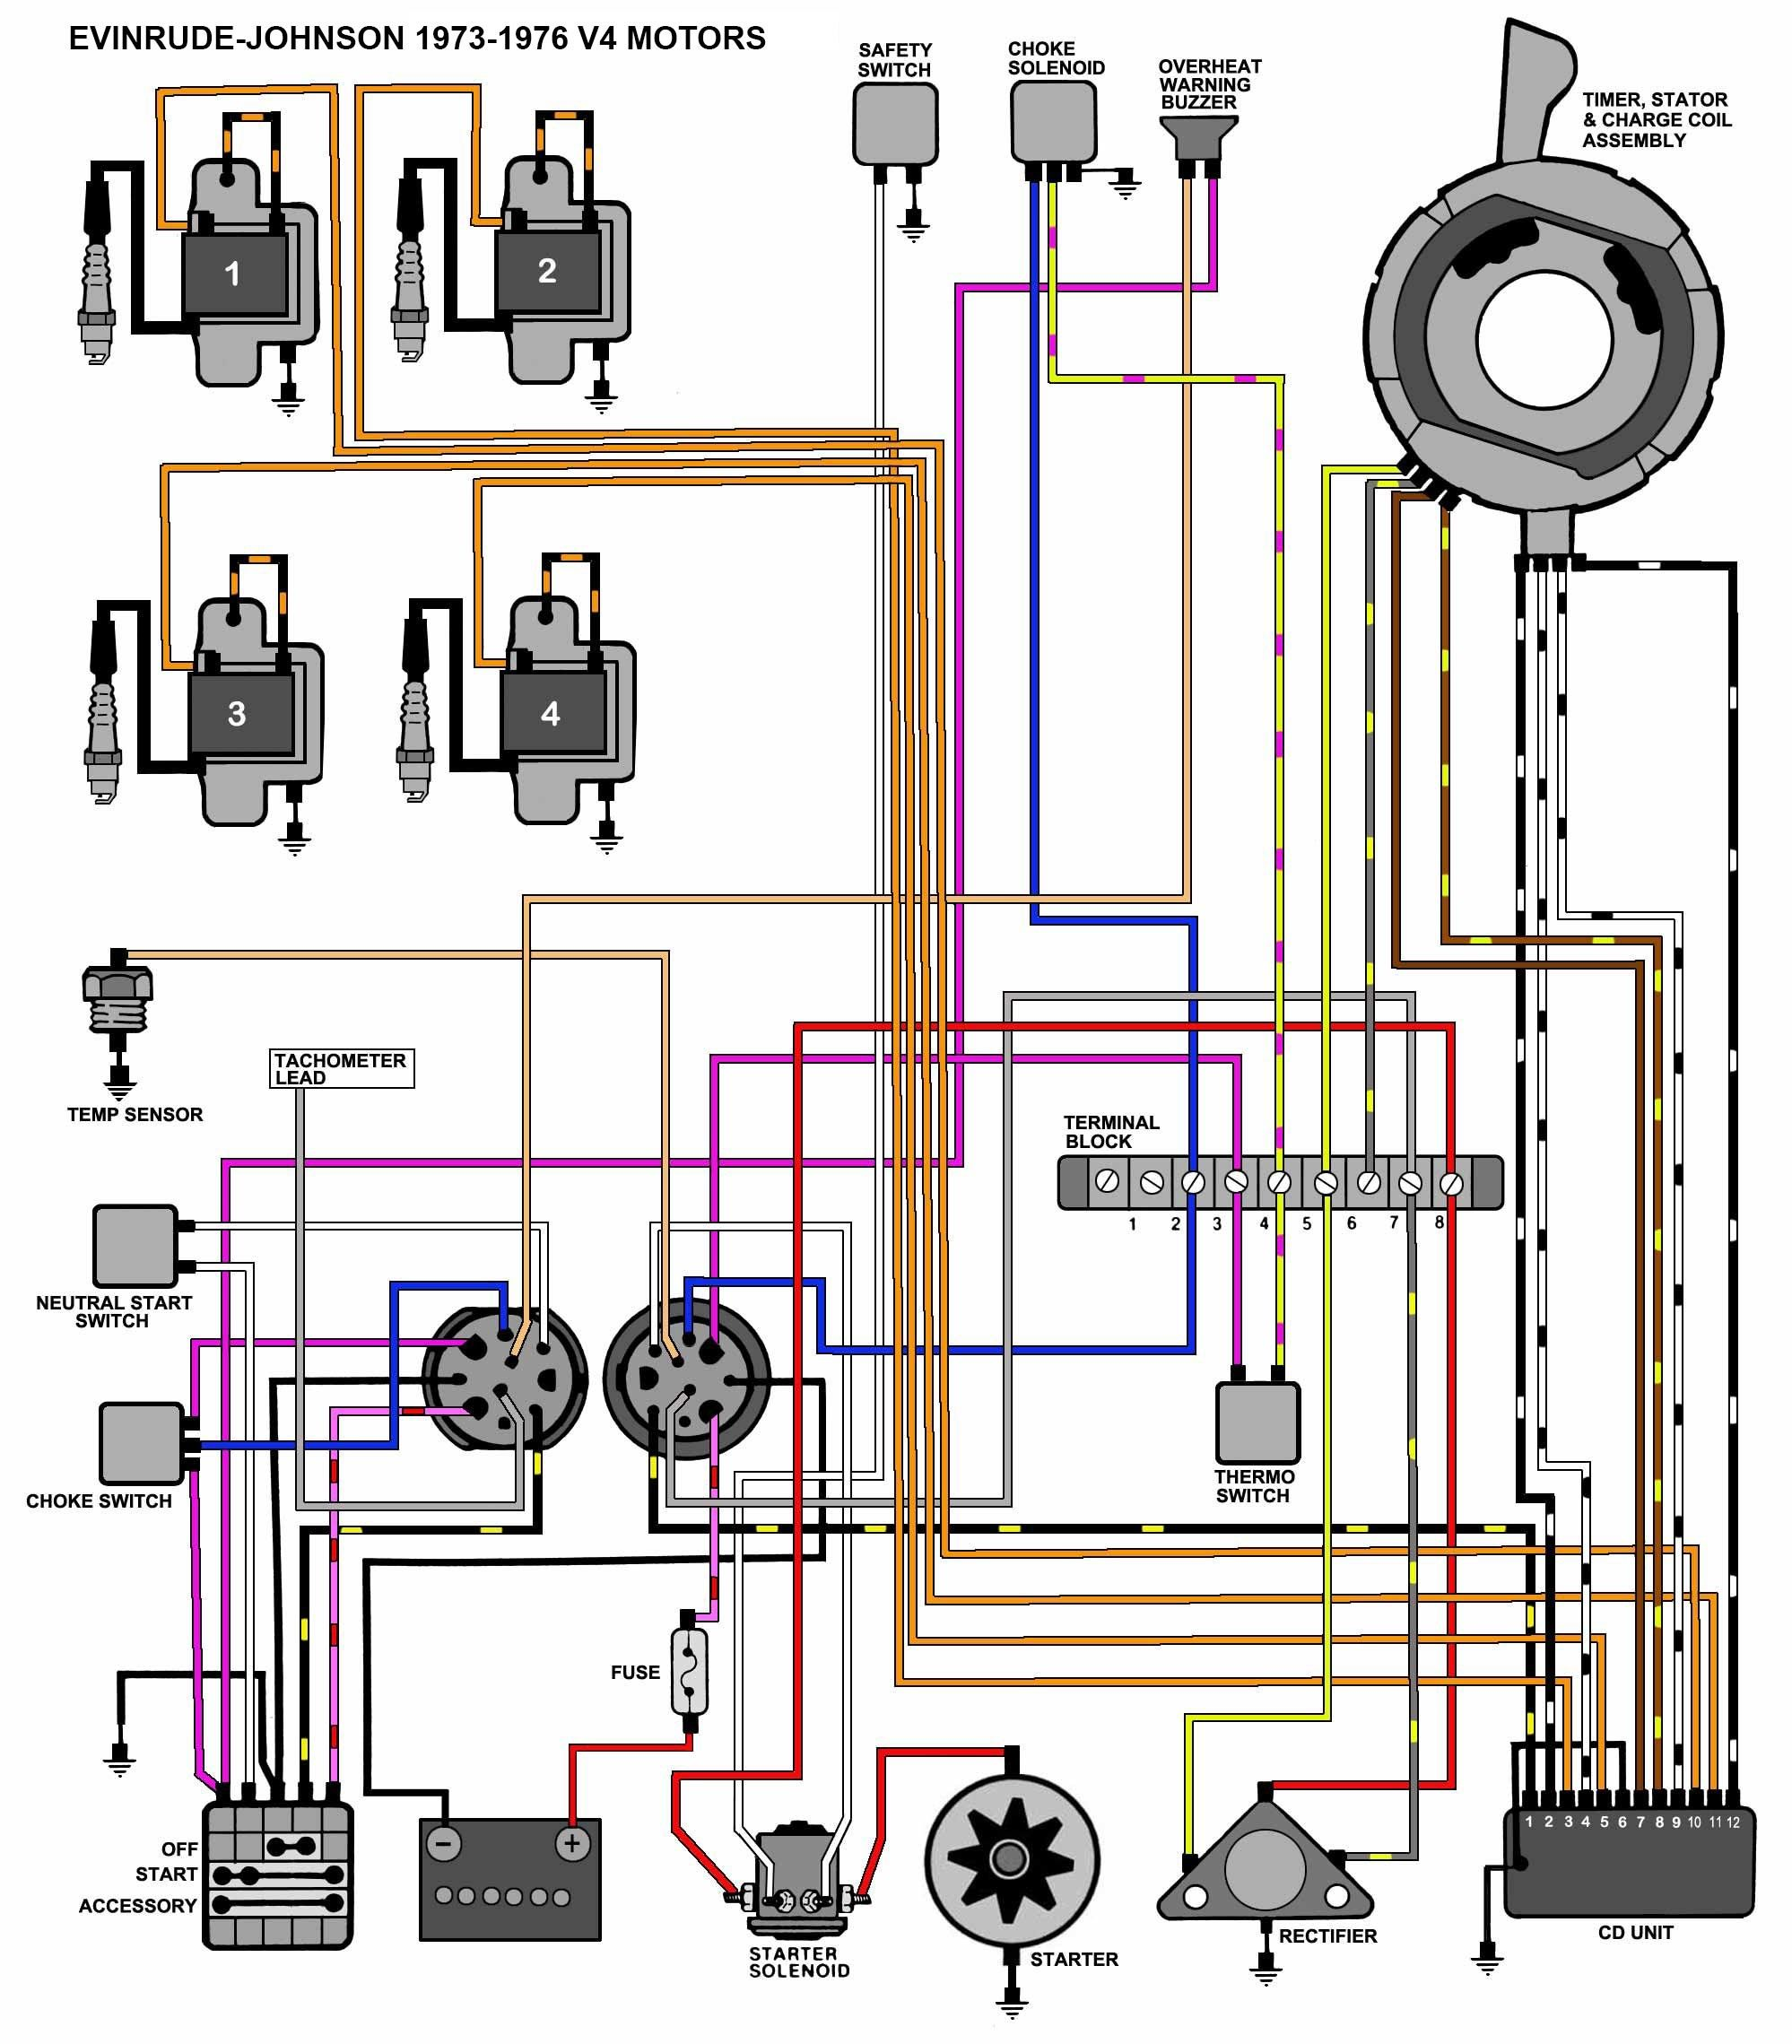 2018 Mercury 115 Prxs Ignition Switch Diagram In 2021 Diagram Boat Wiring Outboard